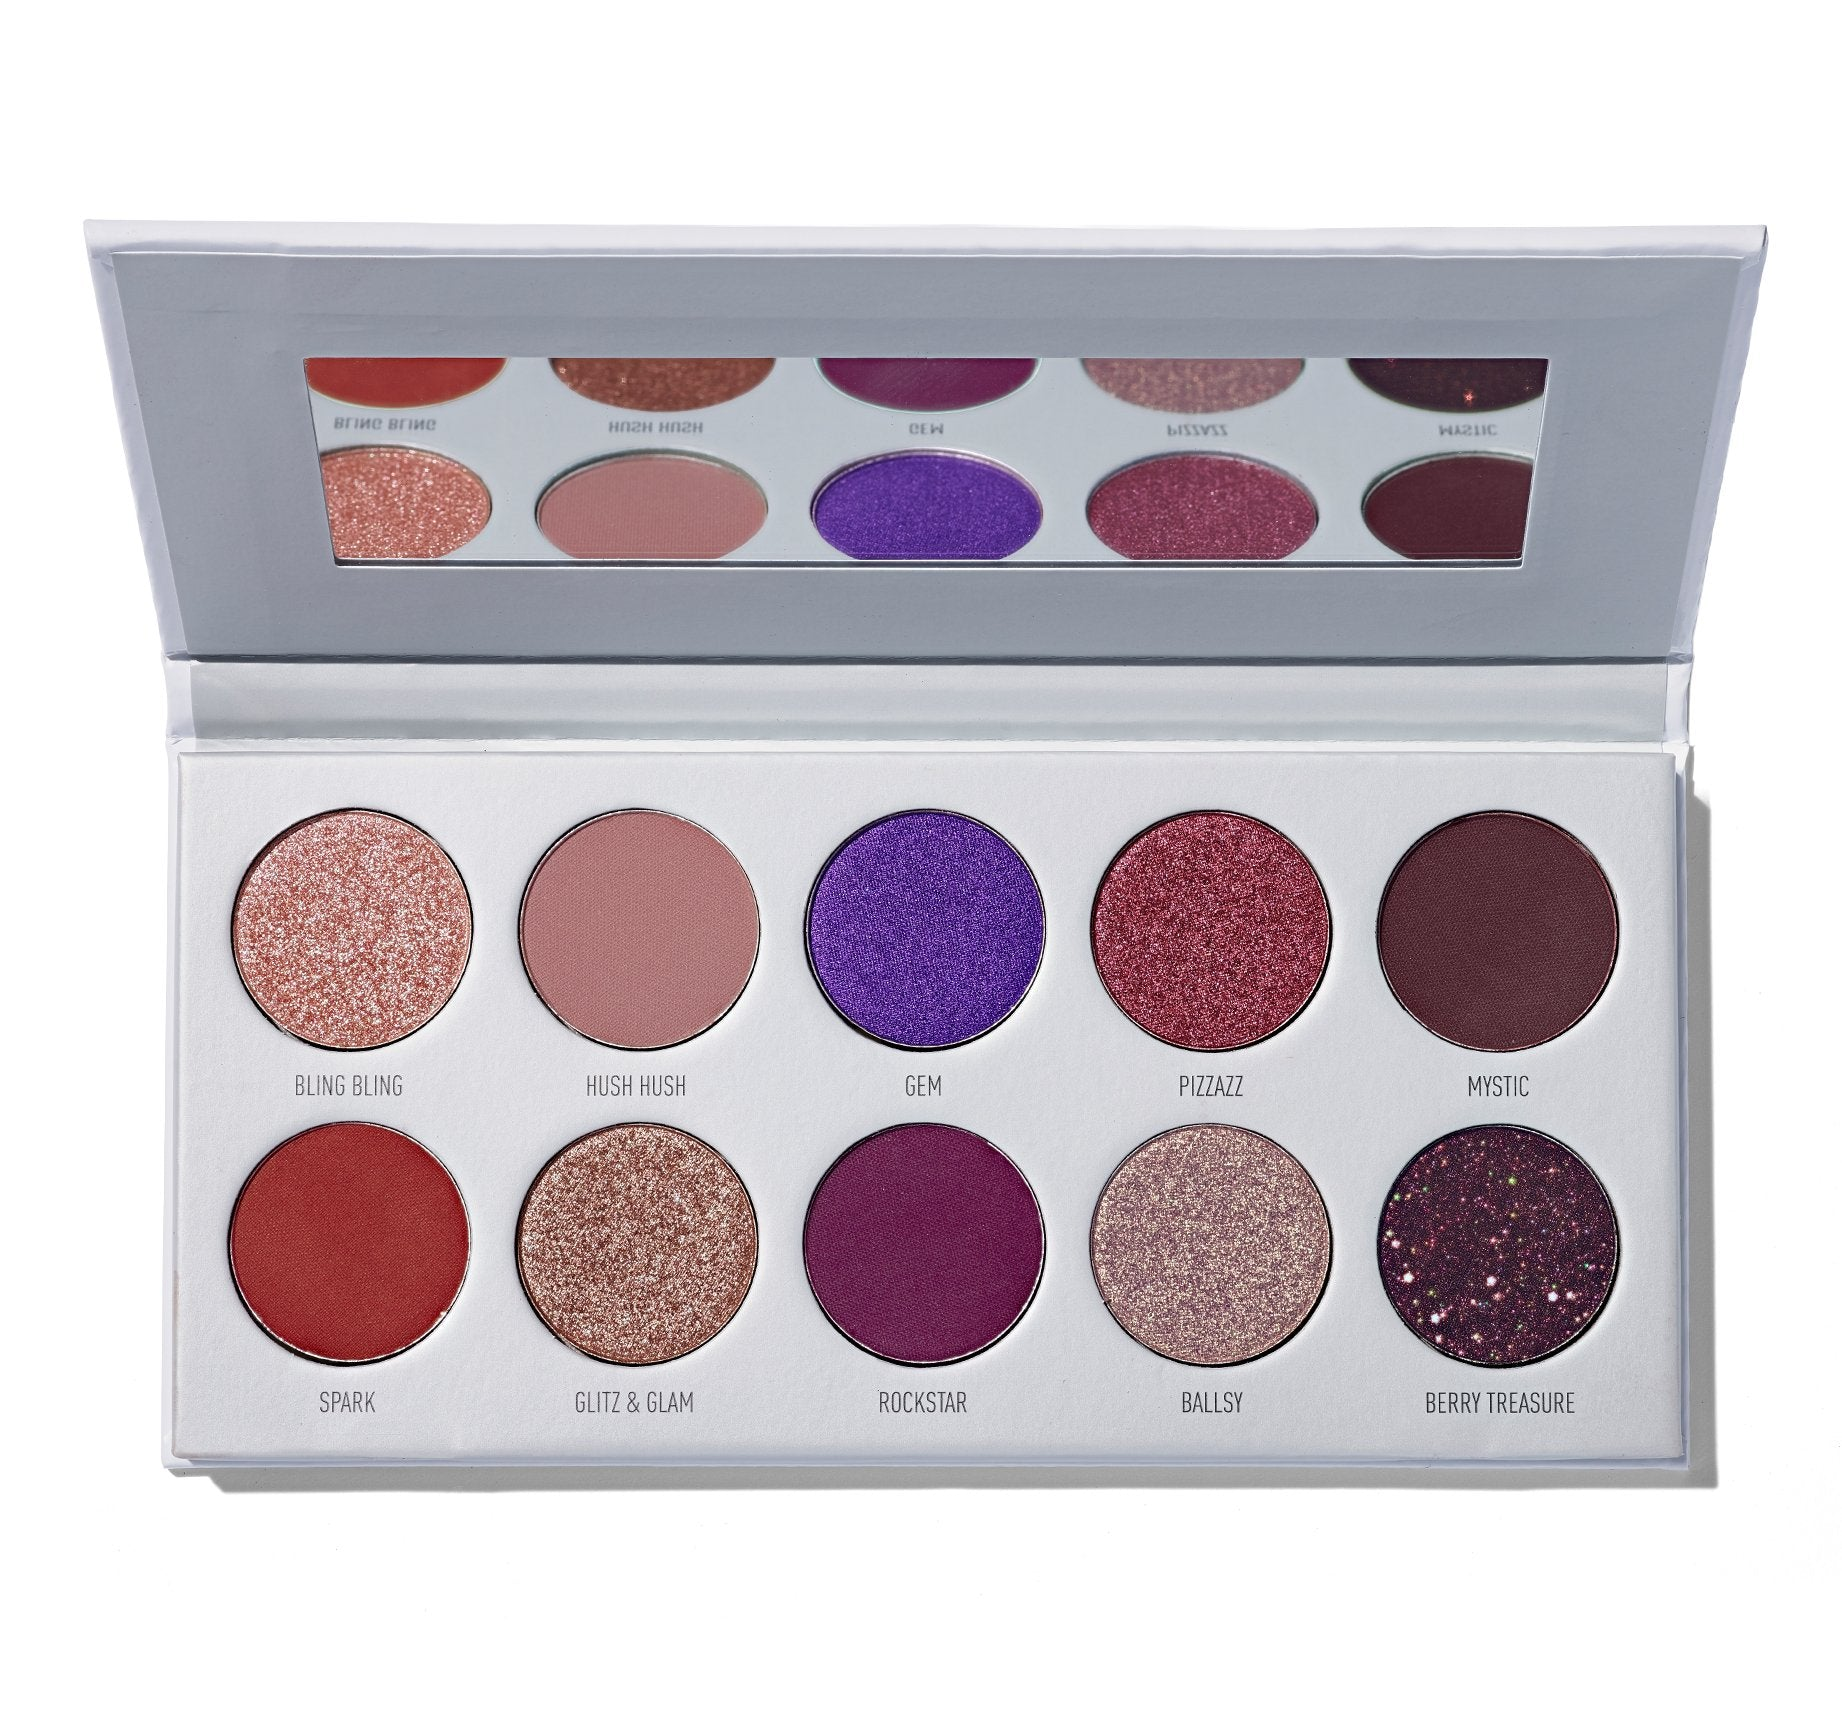 MORPHE X JACLYN HILL BLING BOSS EYESHADOW PALETTE, view larger image